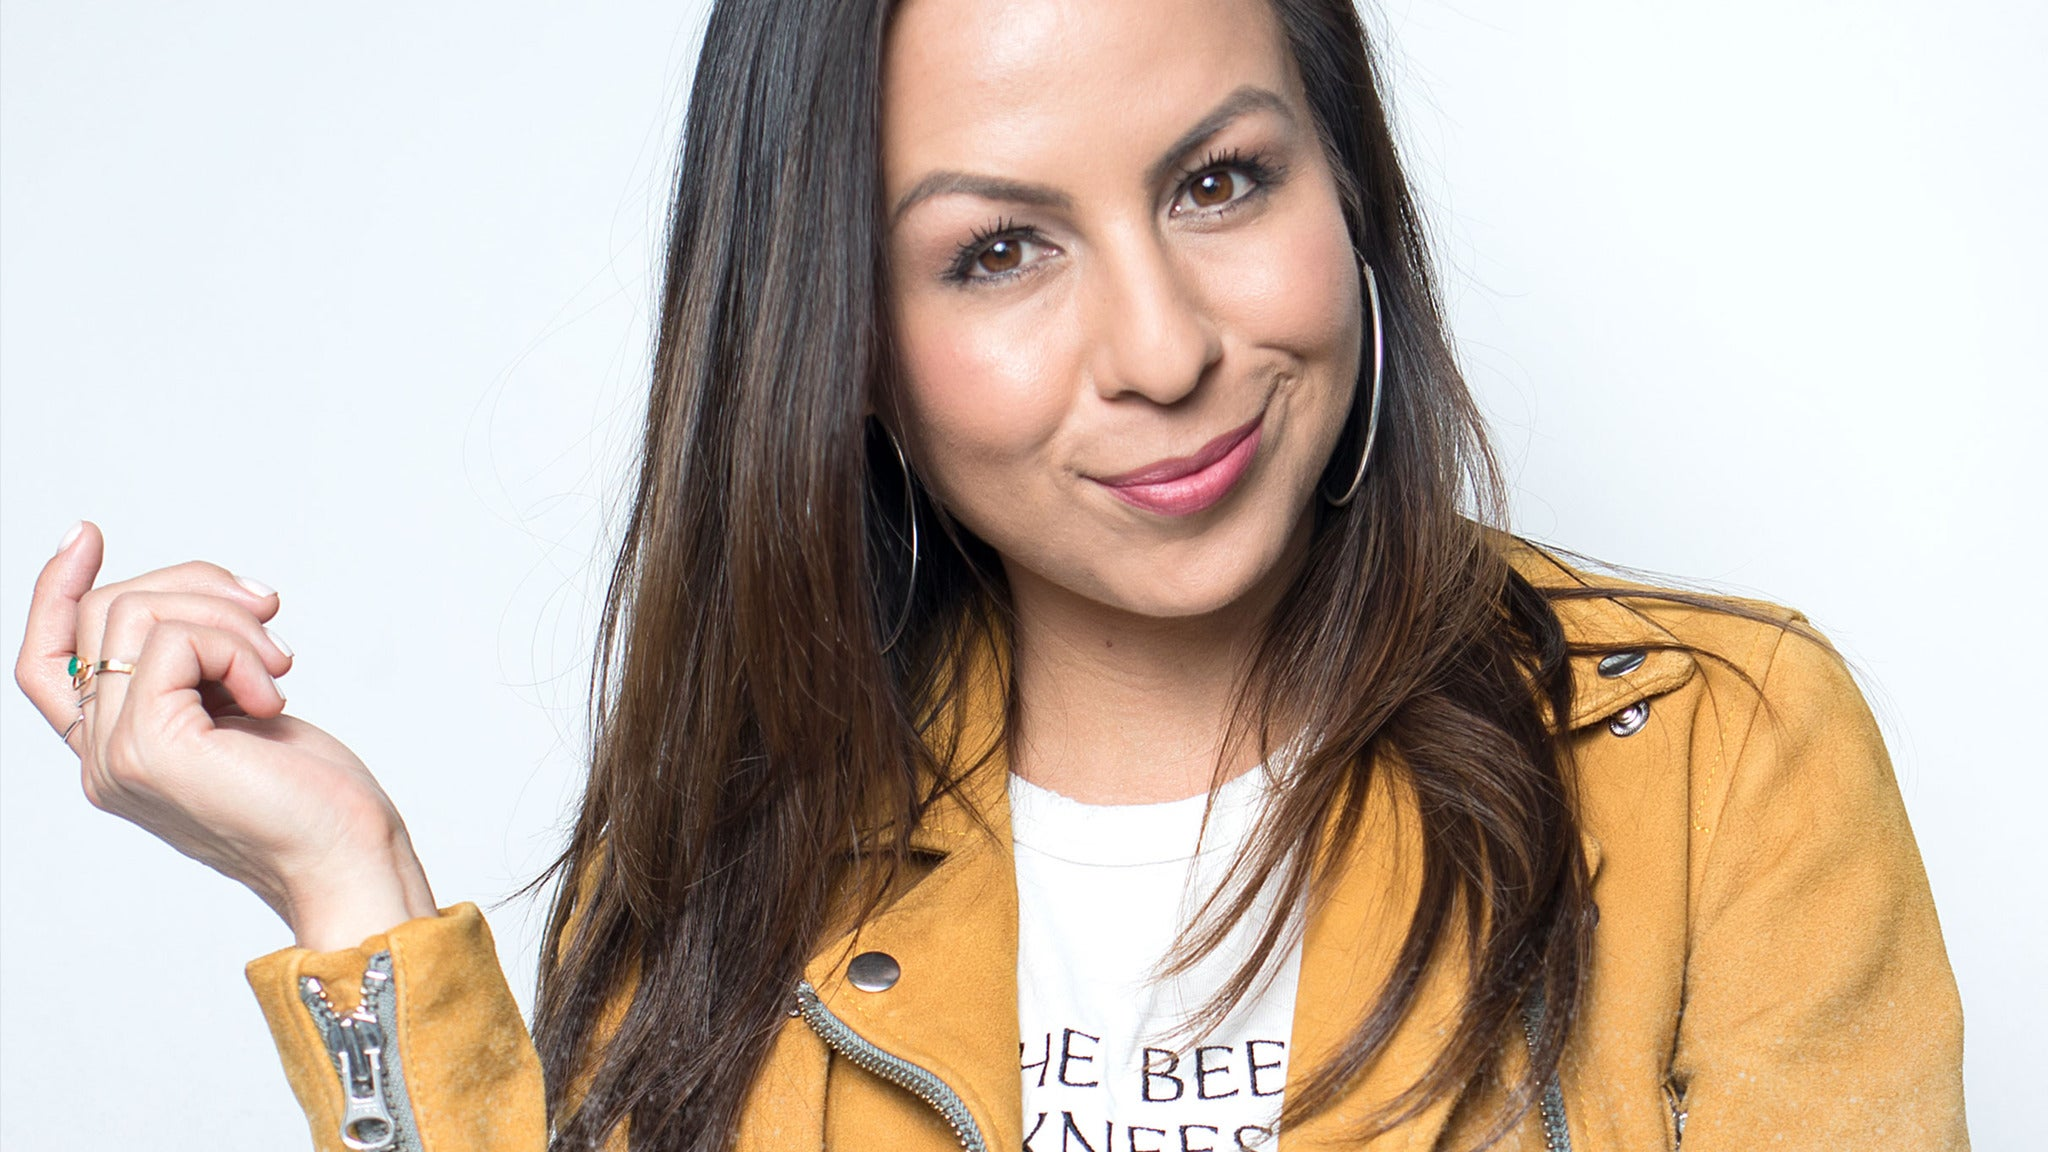 Anjelah Johnson at Chicago Improv - Schaumburg - Schaumburg, IL 60173